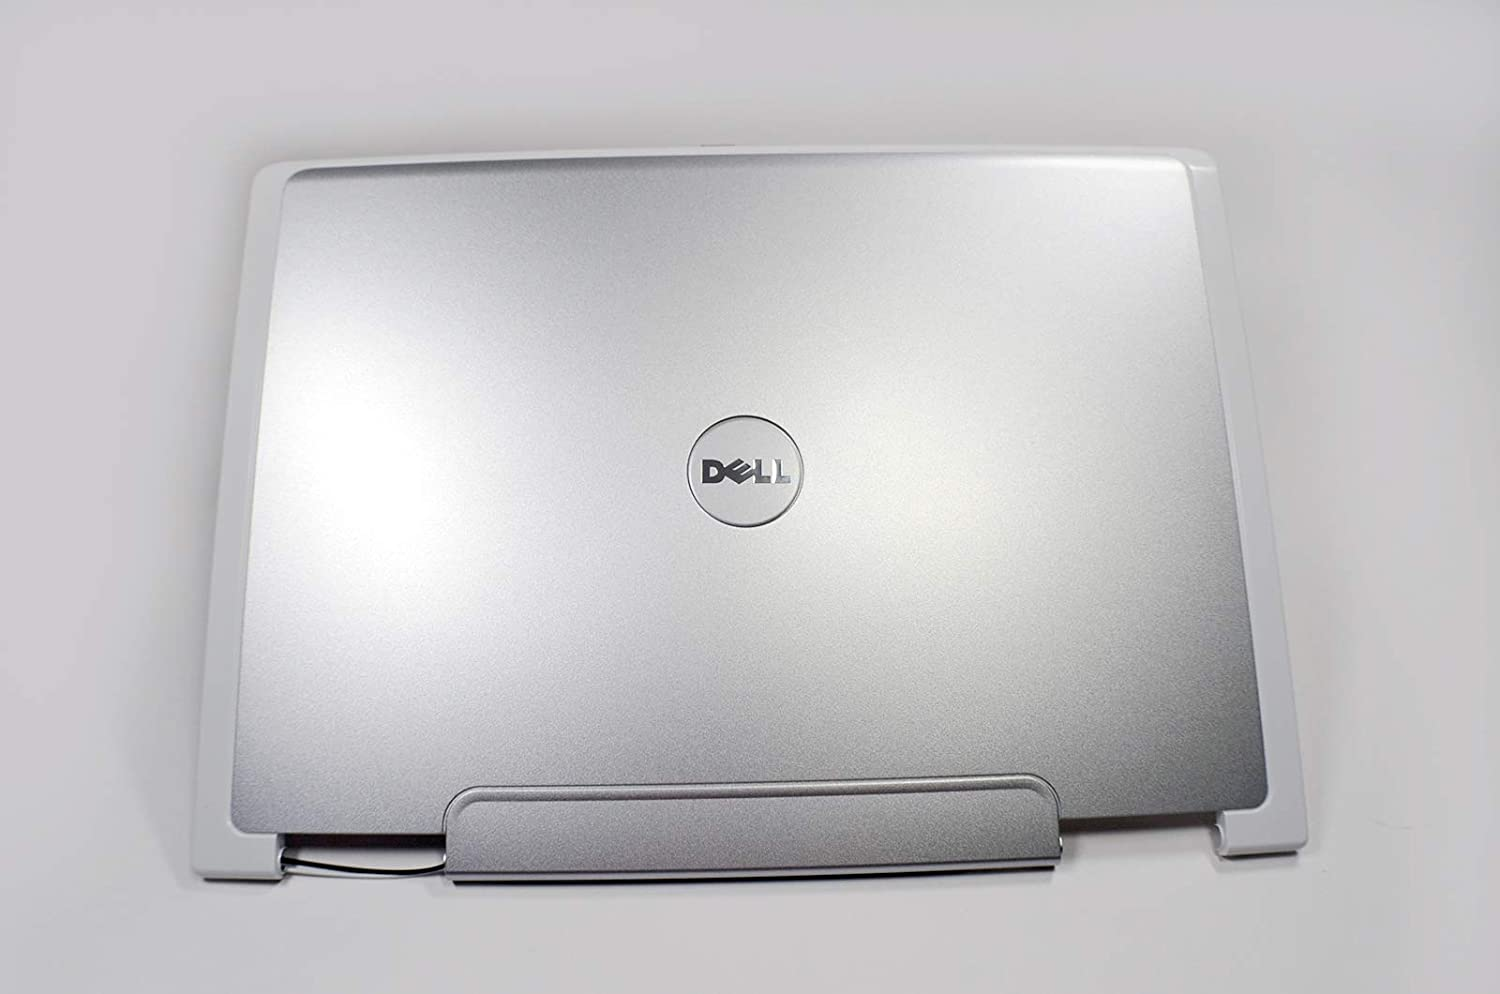 New Genuine OEM for Dell Inspiron 630M 640M E1405 XPS M1405 Laptop 14.1 Inch Rear Back Silver Cover Lid JC069